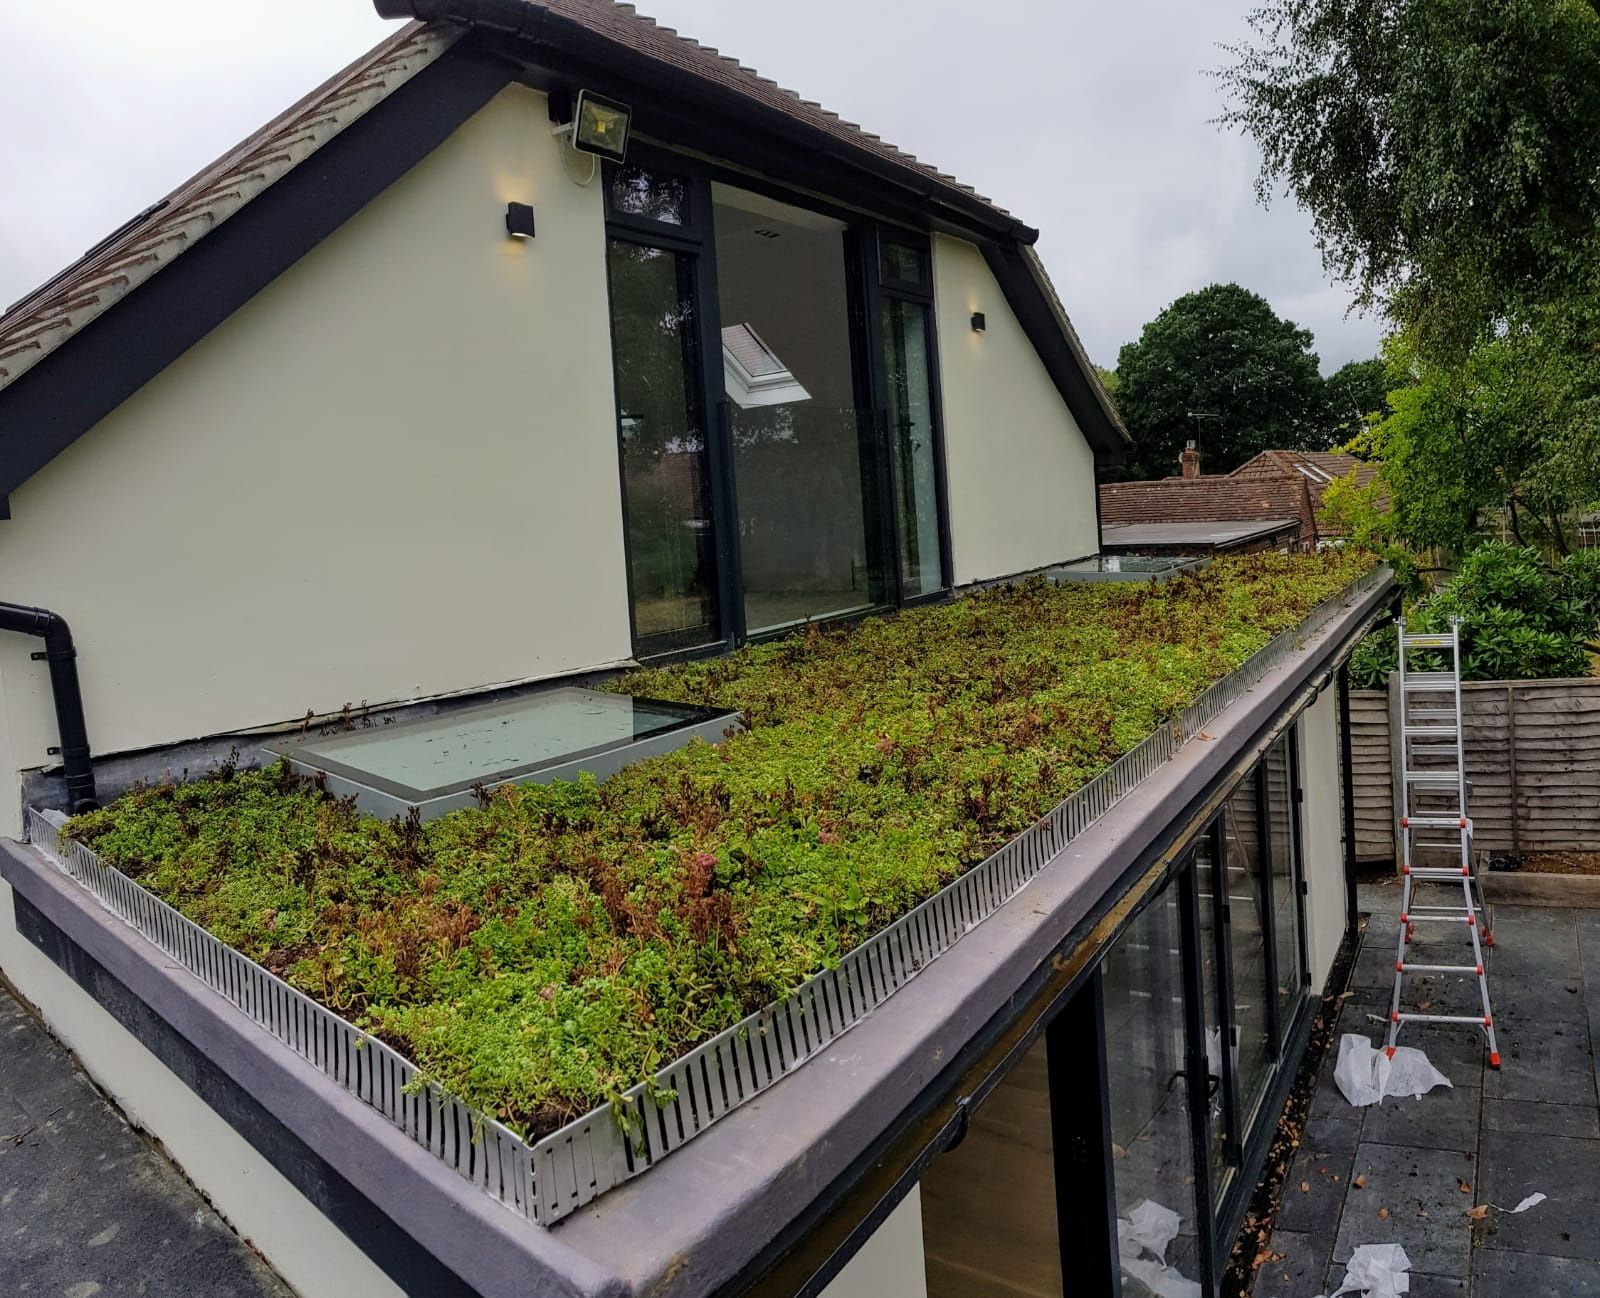 Arriving fully established and with all the necessary accessories, it only took a couple of hours for this homeowner to complete his green roof, turning something they'd try to ignore from an upstairs window into a feature they were proud to show.  #greenroofsystem #greenroofs #homeinspo #houseextension #diy #selfinstallsystem #selfinstall #homeimprovement